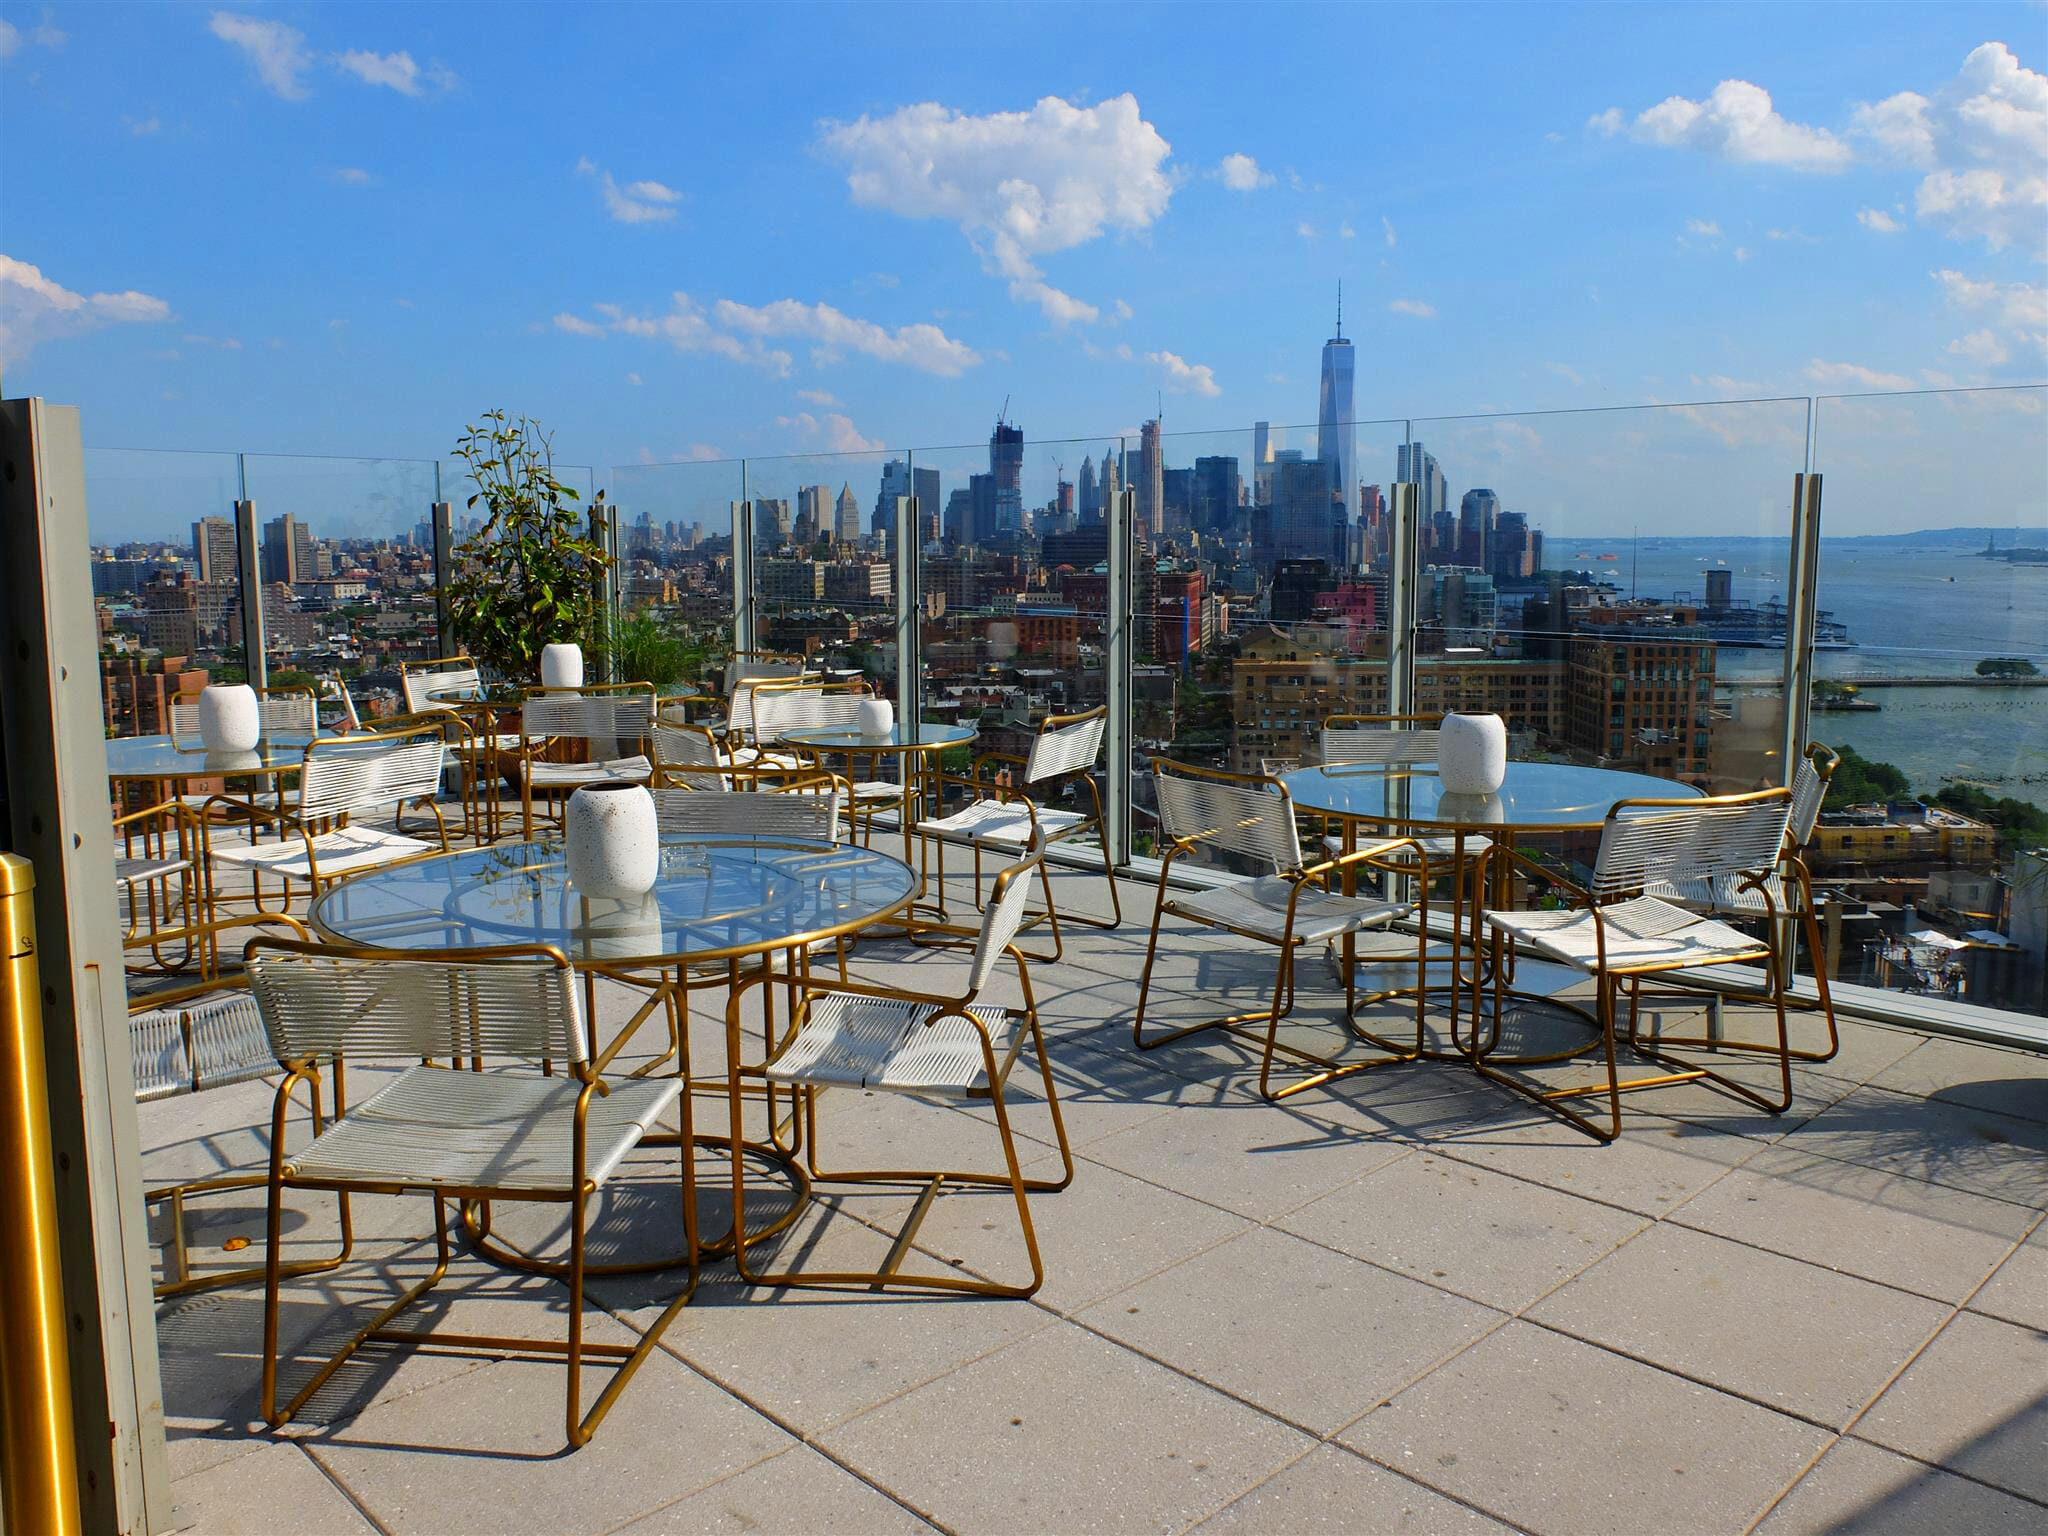 Top of the Standard New York – High Quality Wallpaper